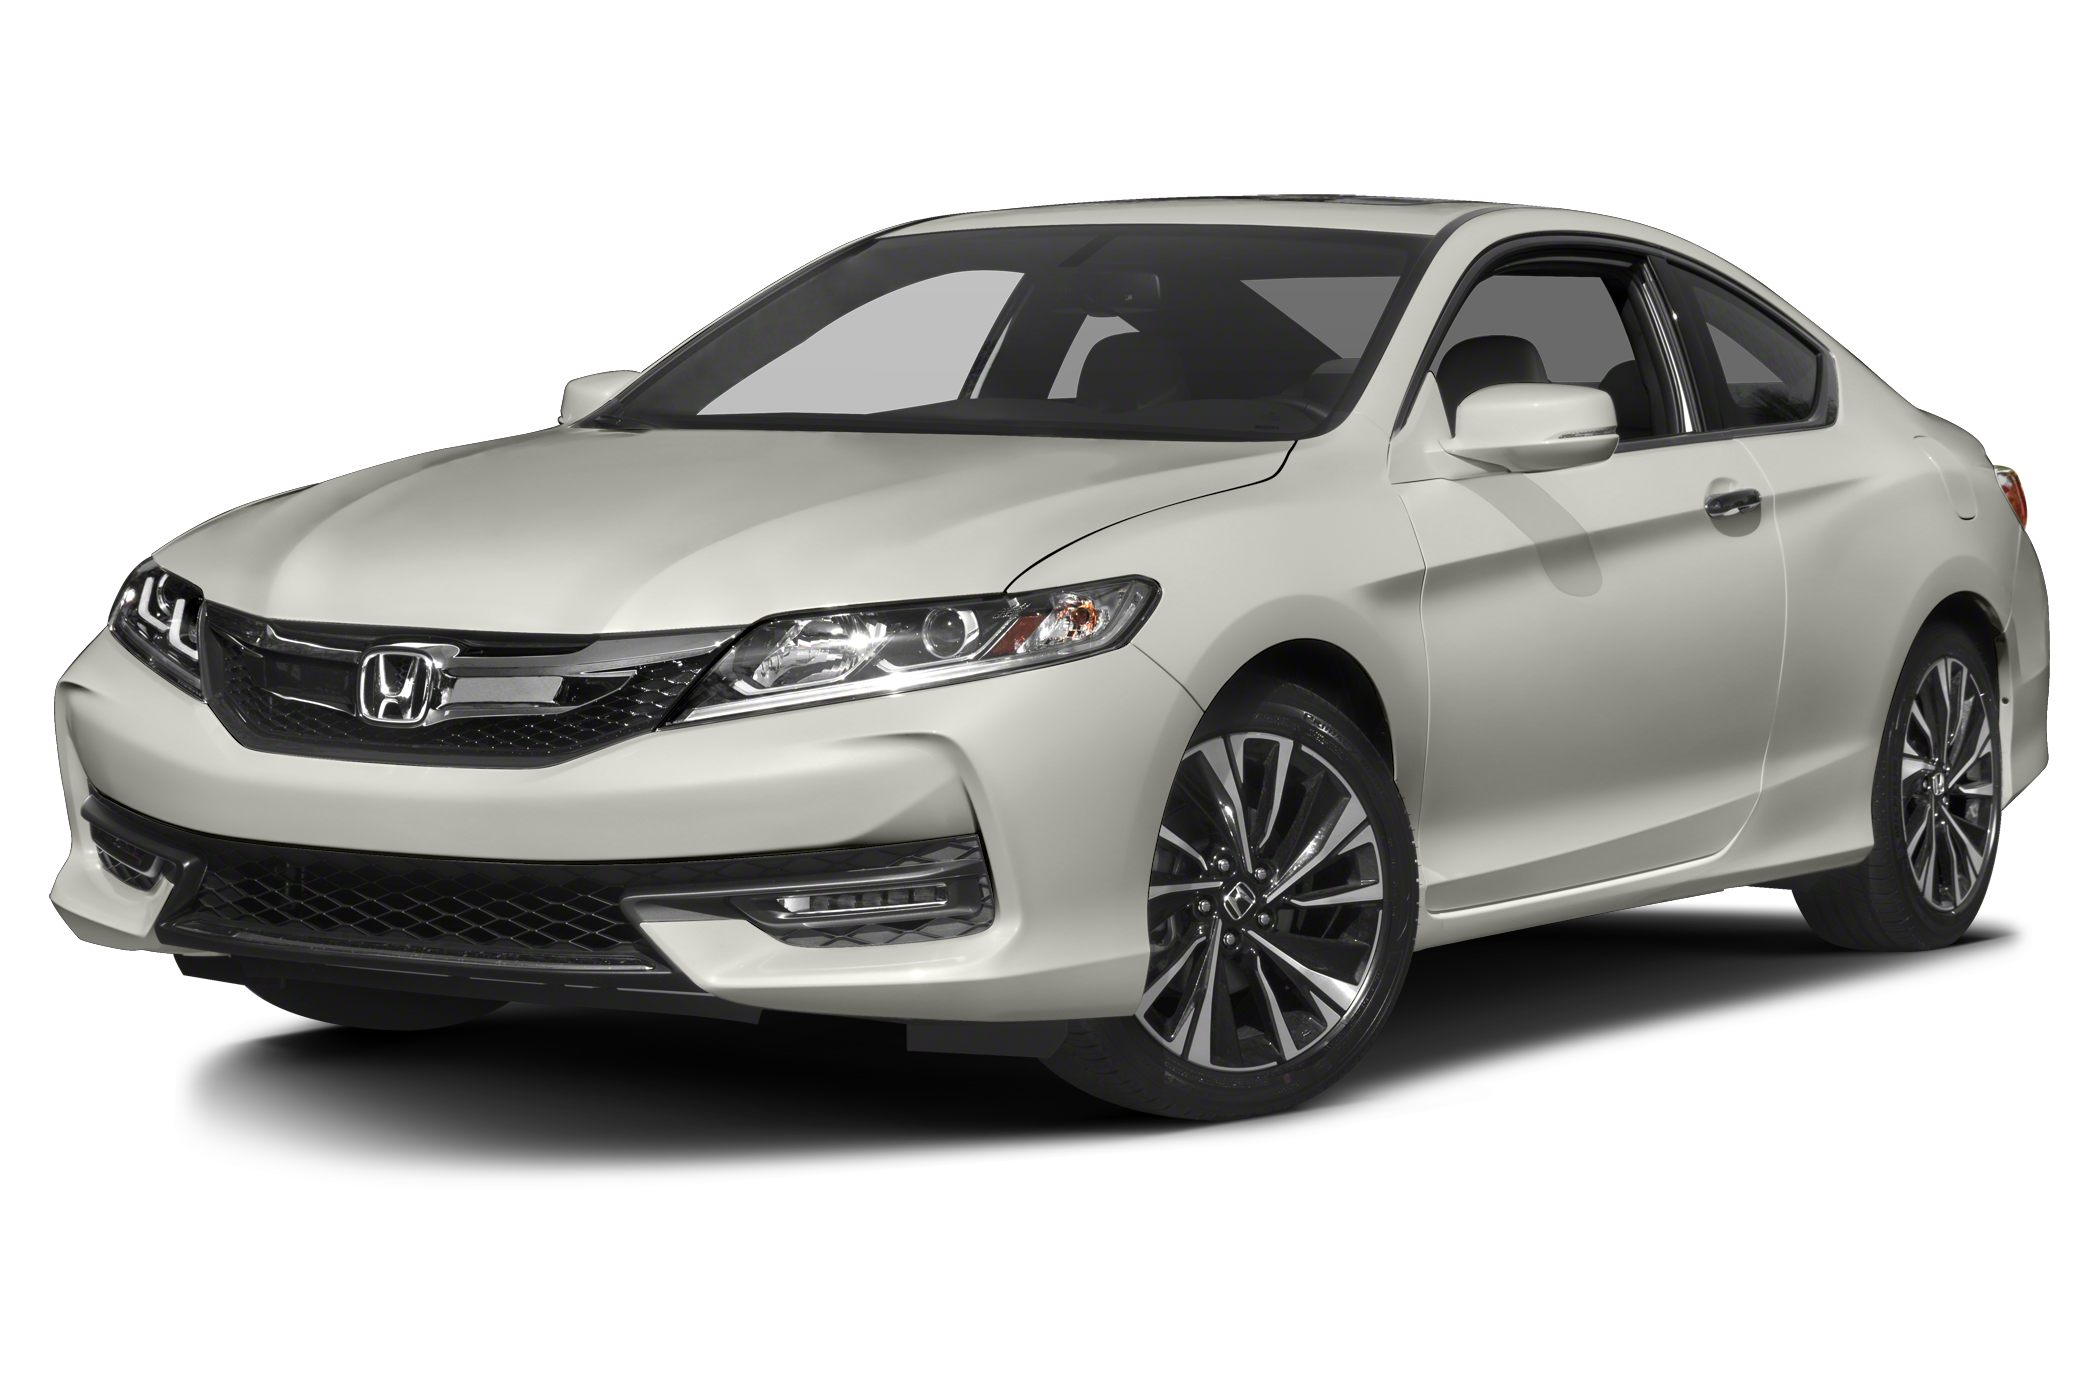 accord honda ex coupe v6 2dr colors trims autoblog specs cars